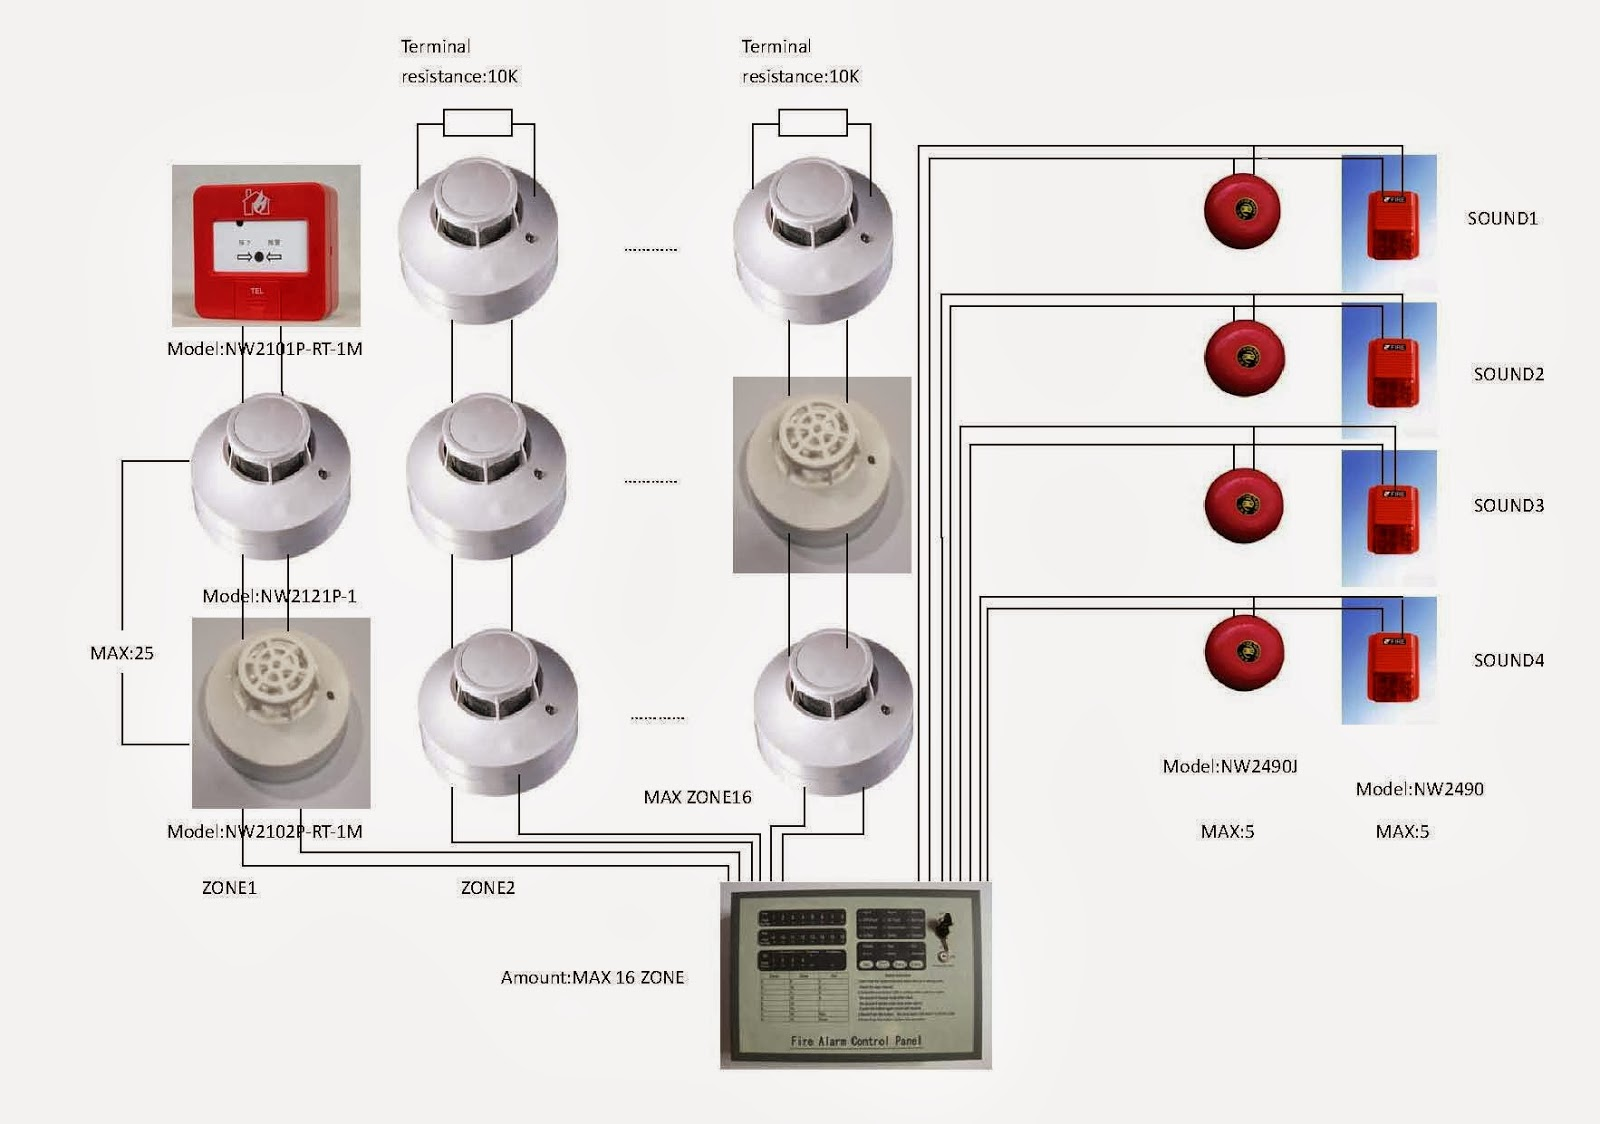 simplex fire alarm wiring wiring diagram source edwards fire alarm service edwards fire alarm wiring [ 1600 x 1124 Pixel ]